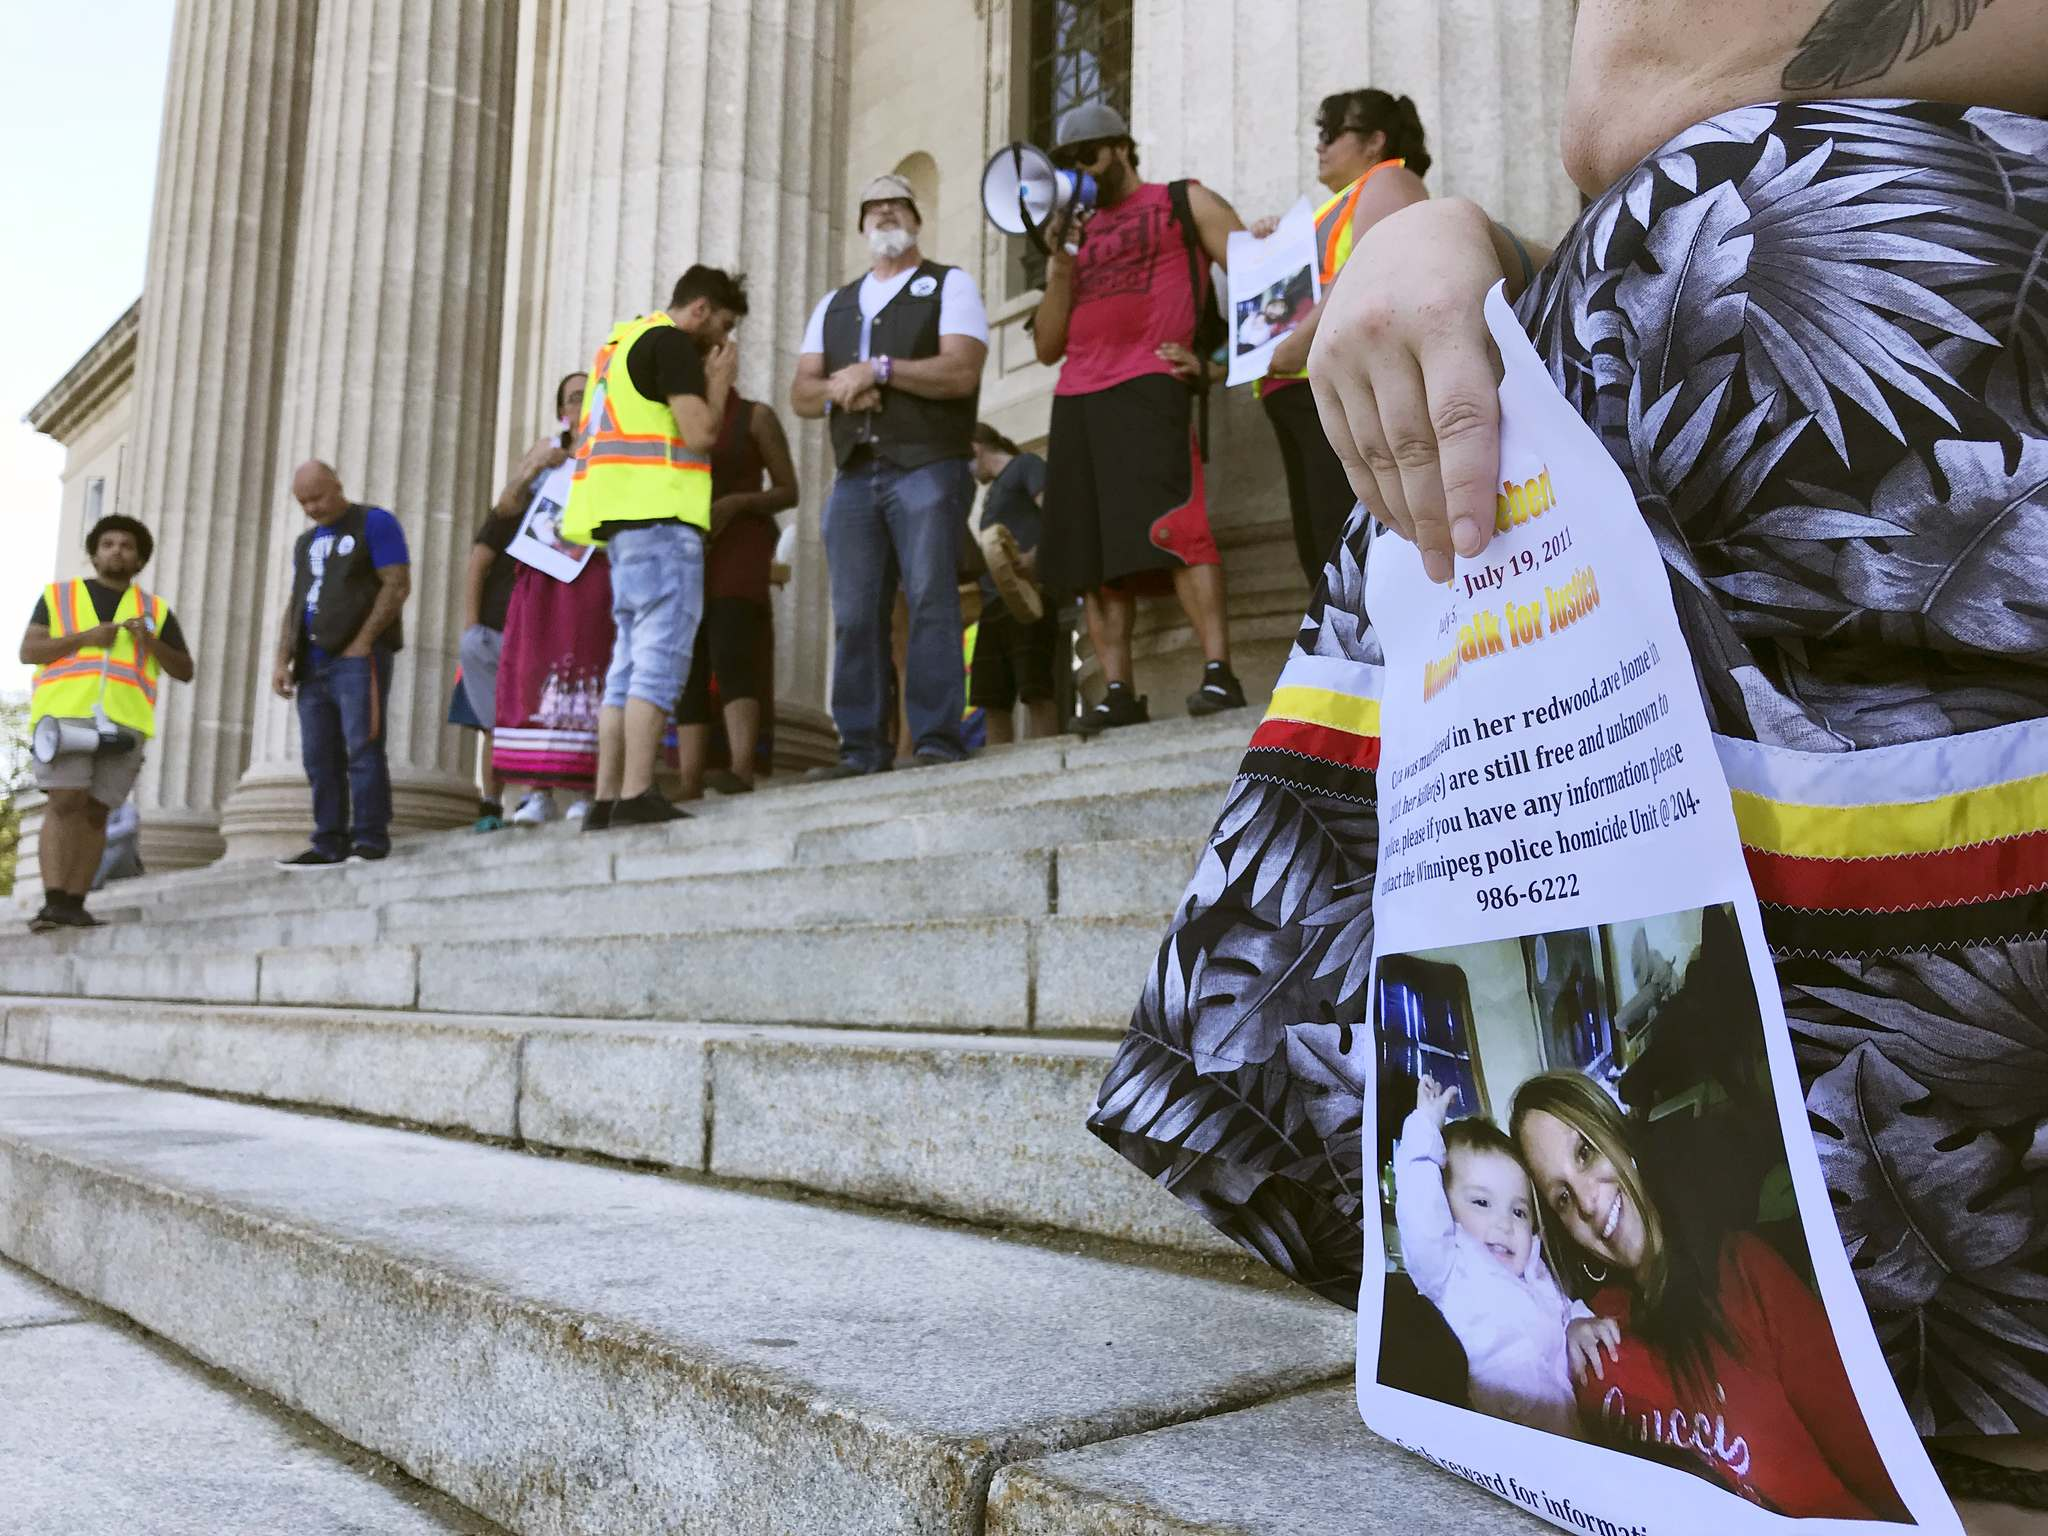 RYAN THORPE / WINNIPEG FREE PRESS</p><p>Roughly 70 people marched from the North End to the steps of the Manitoba Legislative Building Friday in honour of the eighth anniversary of the murder of Cara Lynn Hiebert.</p>